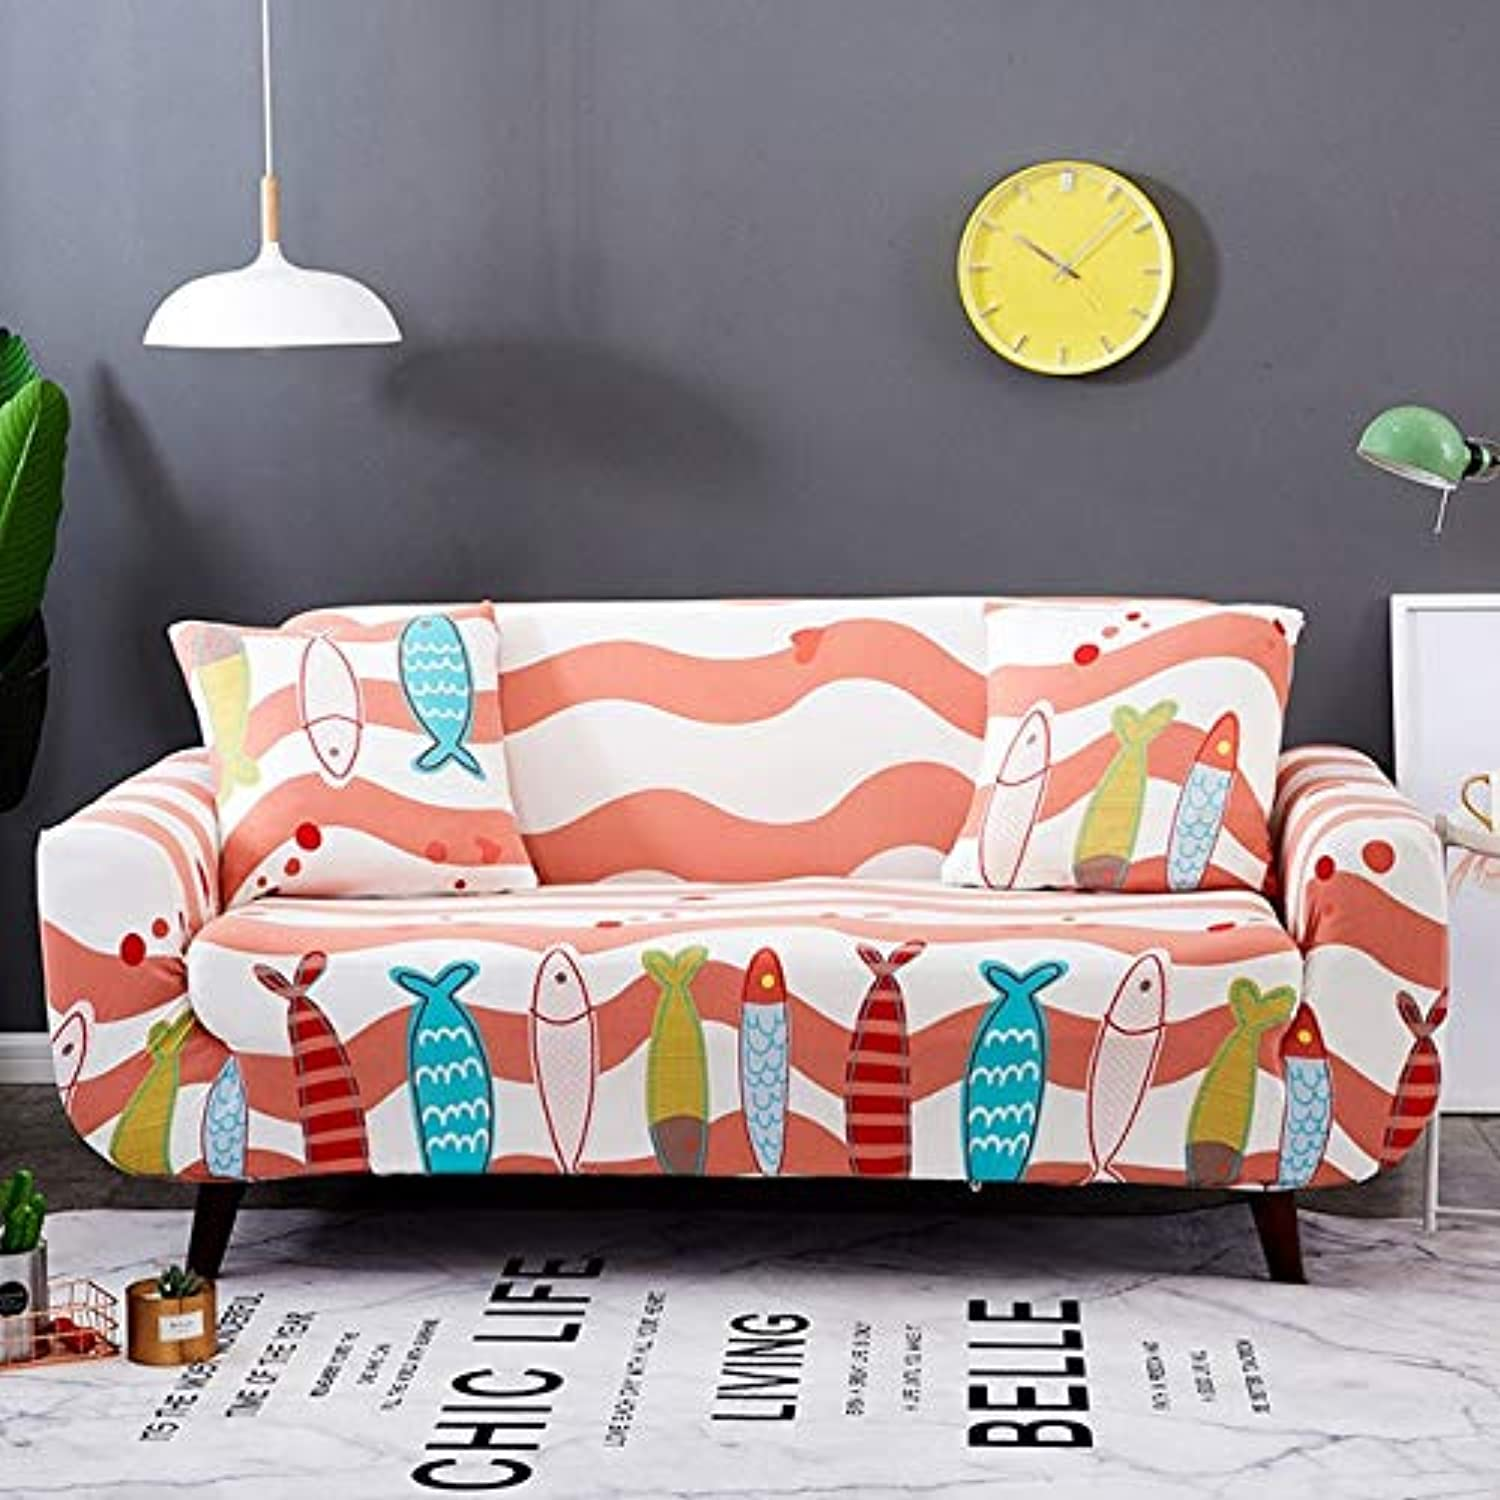 Farmerly Floral Printing Elastic Sofa Cover Tight Wrap All-Inclusive Slip-Resistant Furniture Slipcover Soft Sofa Towel 1 2 3 4-seater   color 13, Single-Seater